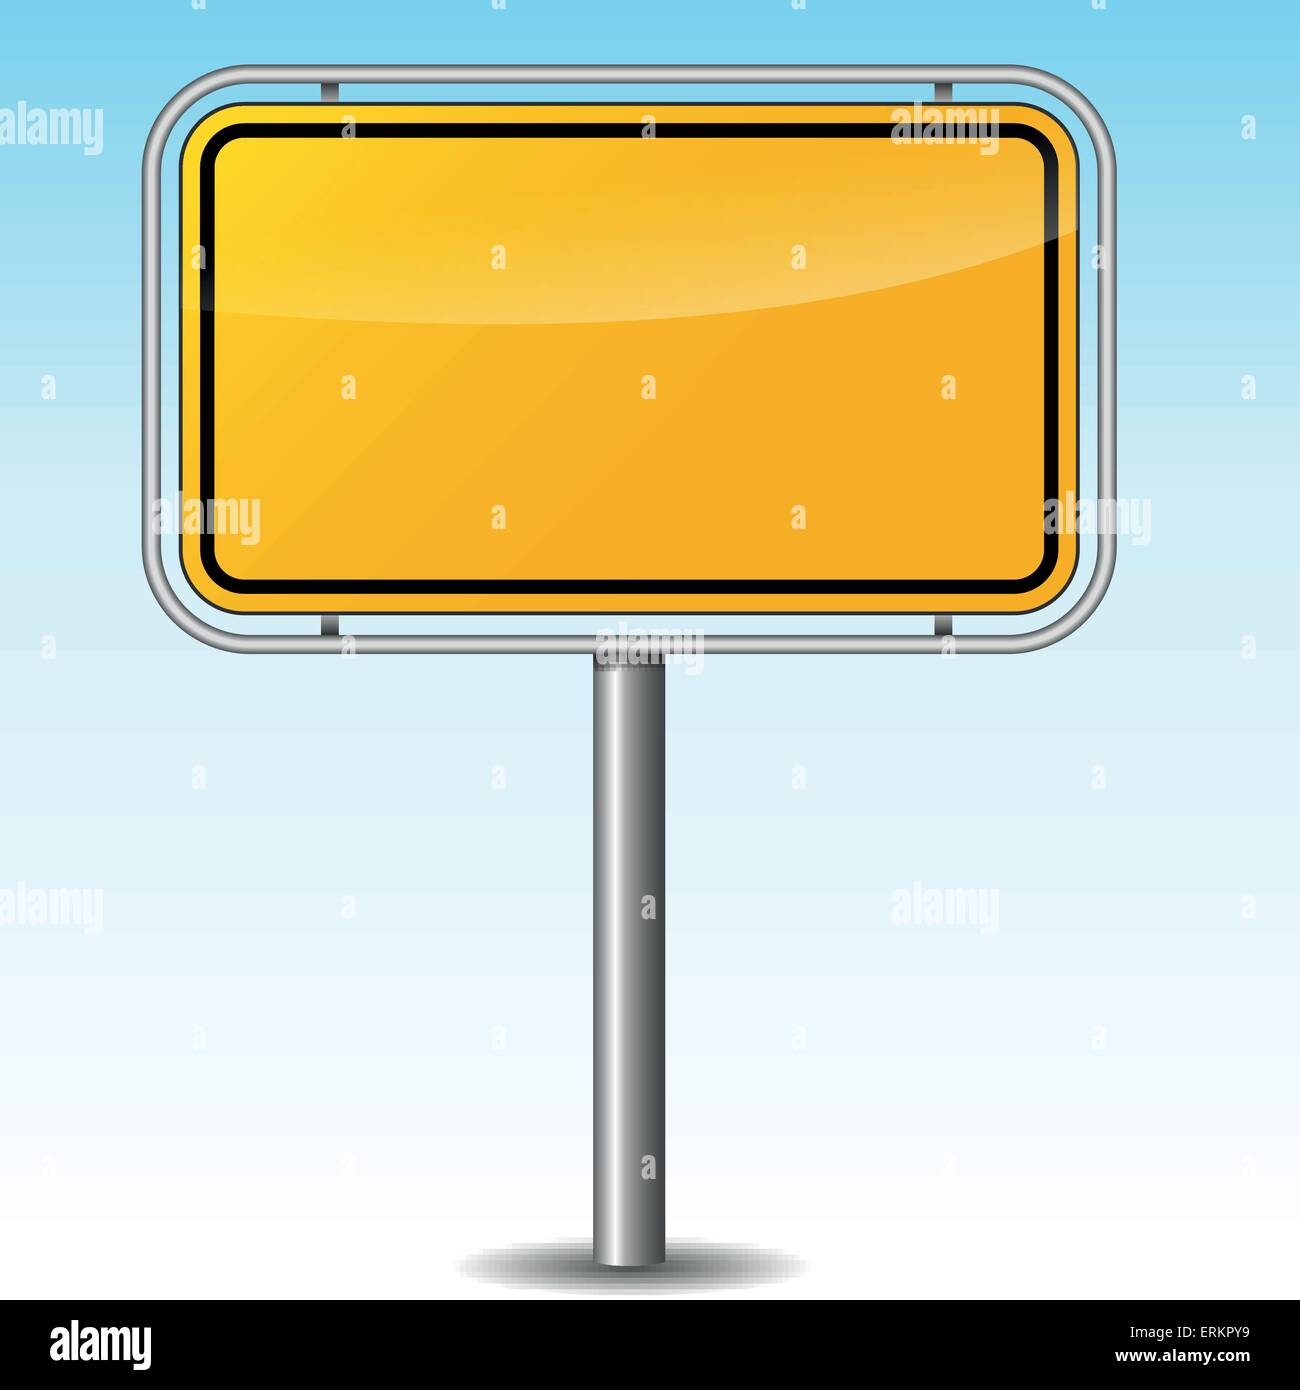 Road Name Sign Blank Stock Photos & Road Name Sign Blank Stock ...